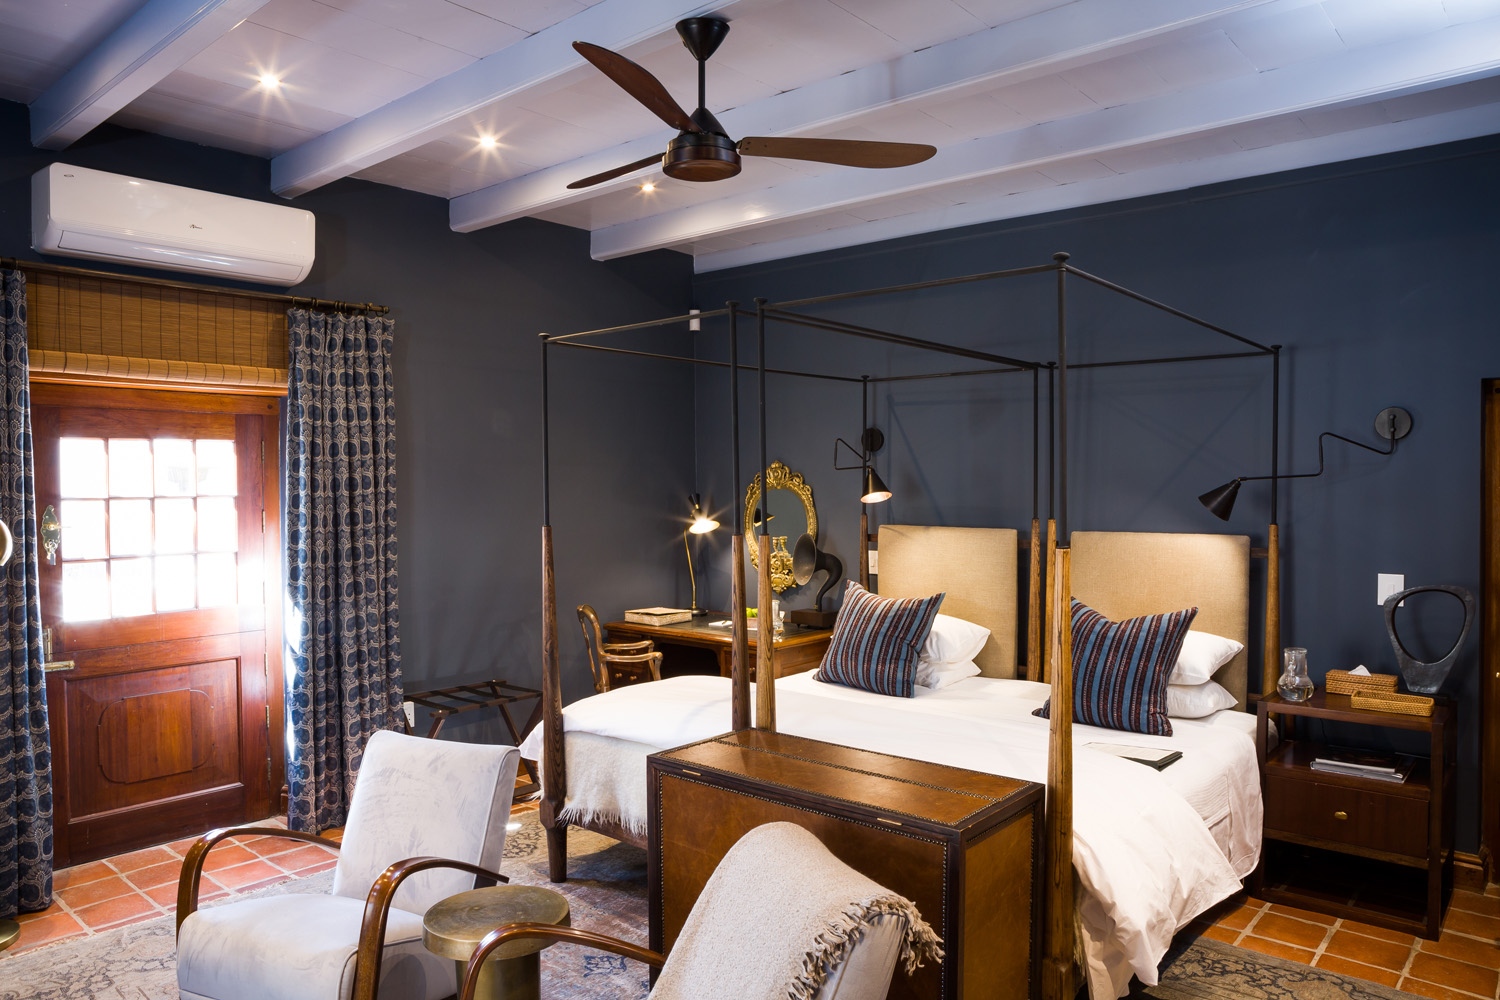 IMMERSE YOURSELF AT AKADEMIE STREET BOUTIQUE HOTEL – YOUR IDEAL ROMANTIC GETAWAY